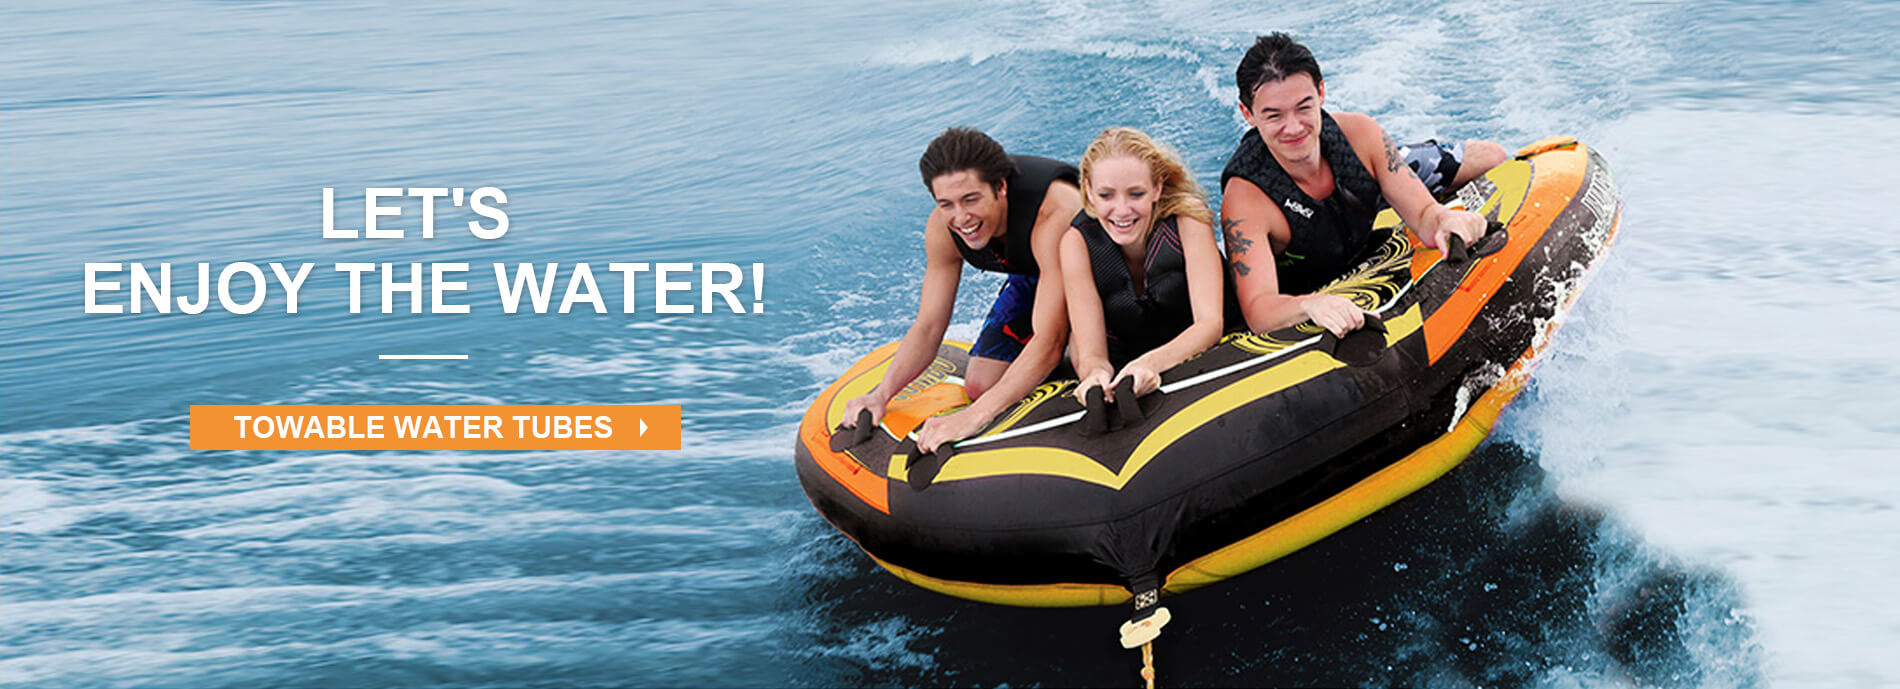 towable water tubes banner